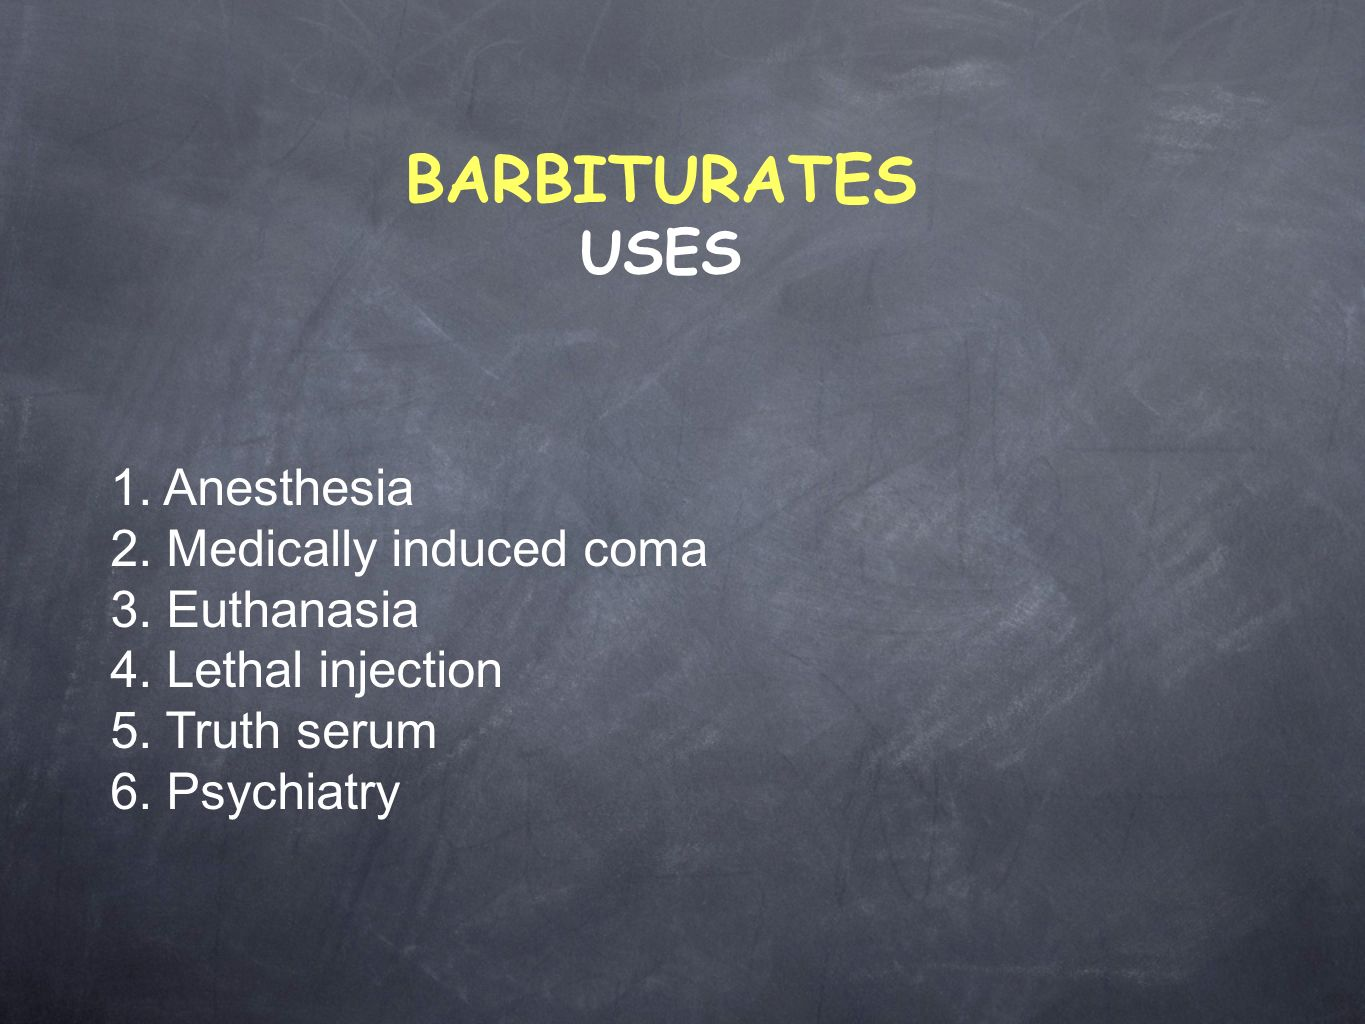 a study of a barbiturate induced coma A barbiturate-induced coma , or barb coma , is a temporary coma (a deep state of unconsciousness ) brought on by a controlled dose of a barbiturate drug, usually pentobarbital or thiopental.